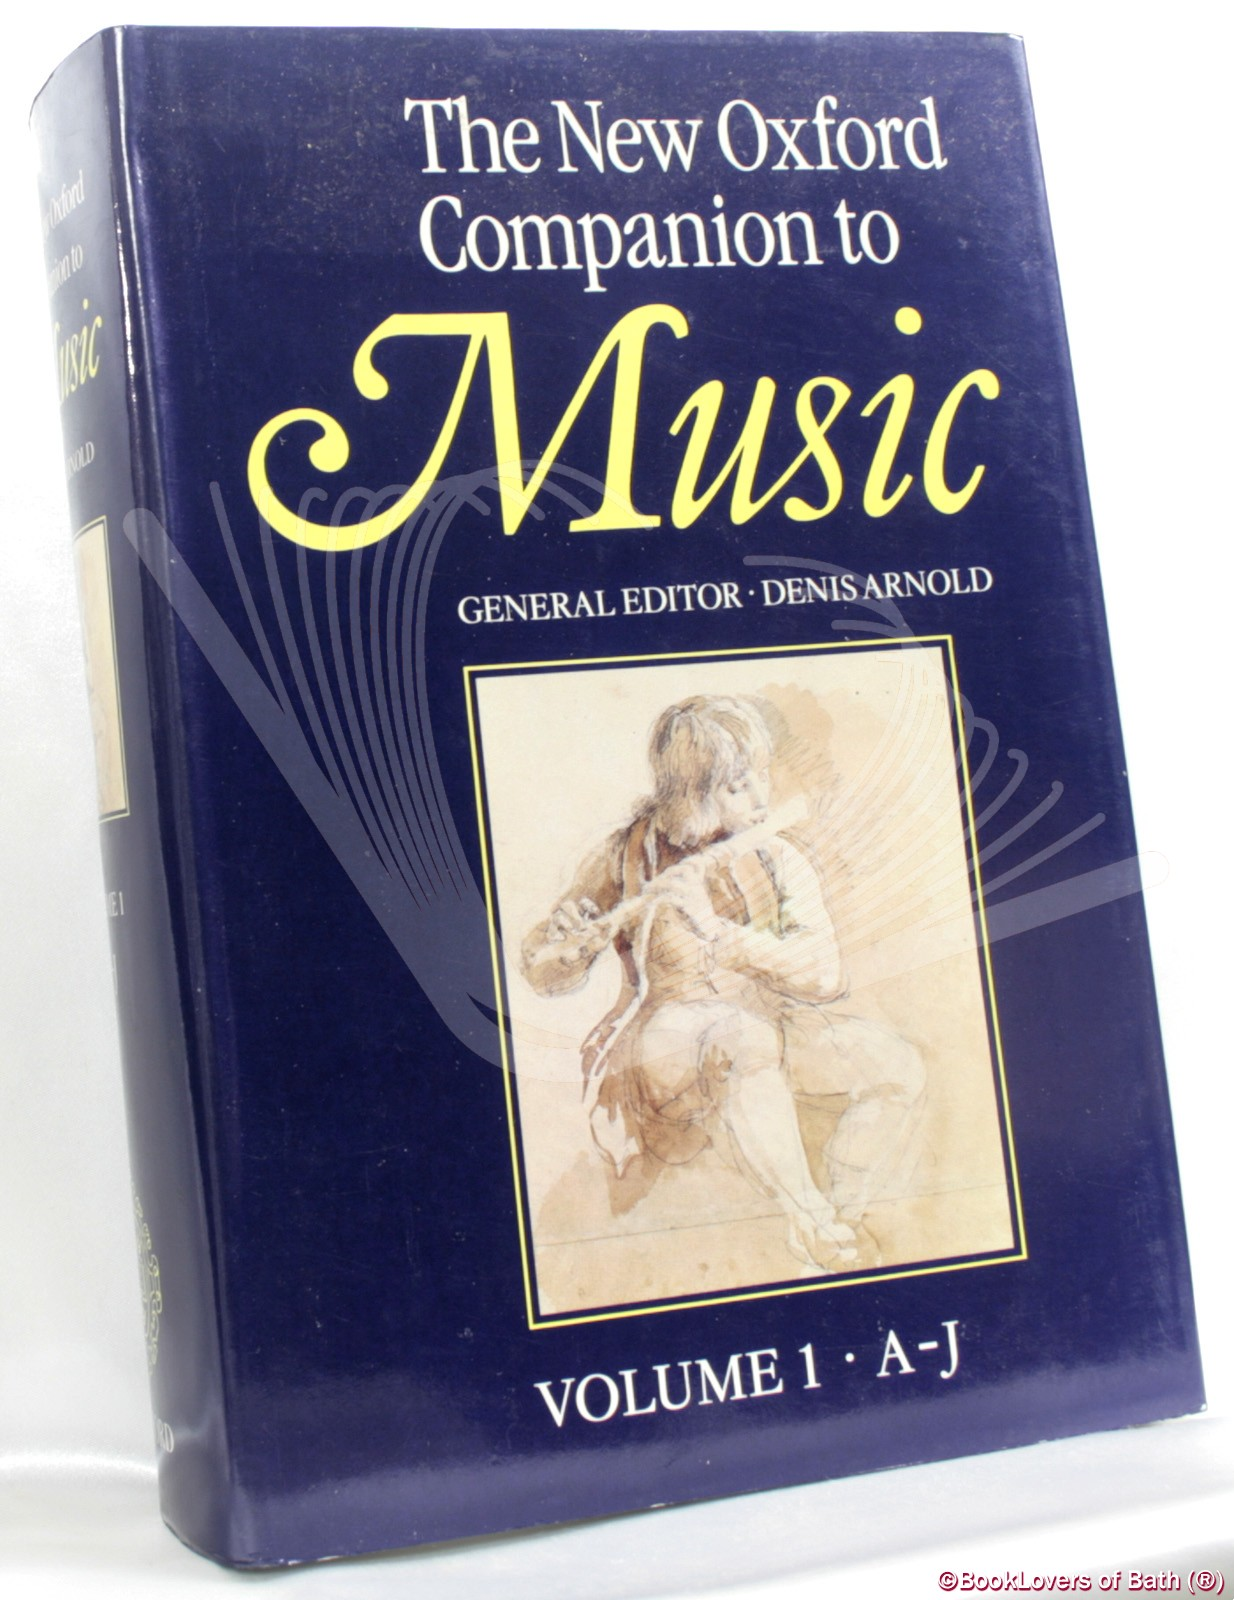 The New Oxford Companion to Music - Edited by Denis Arnold